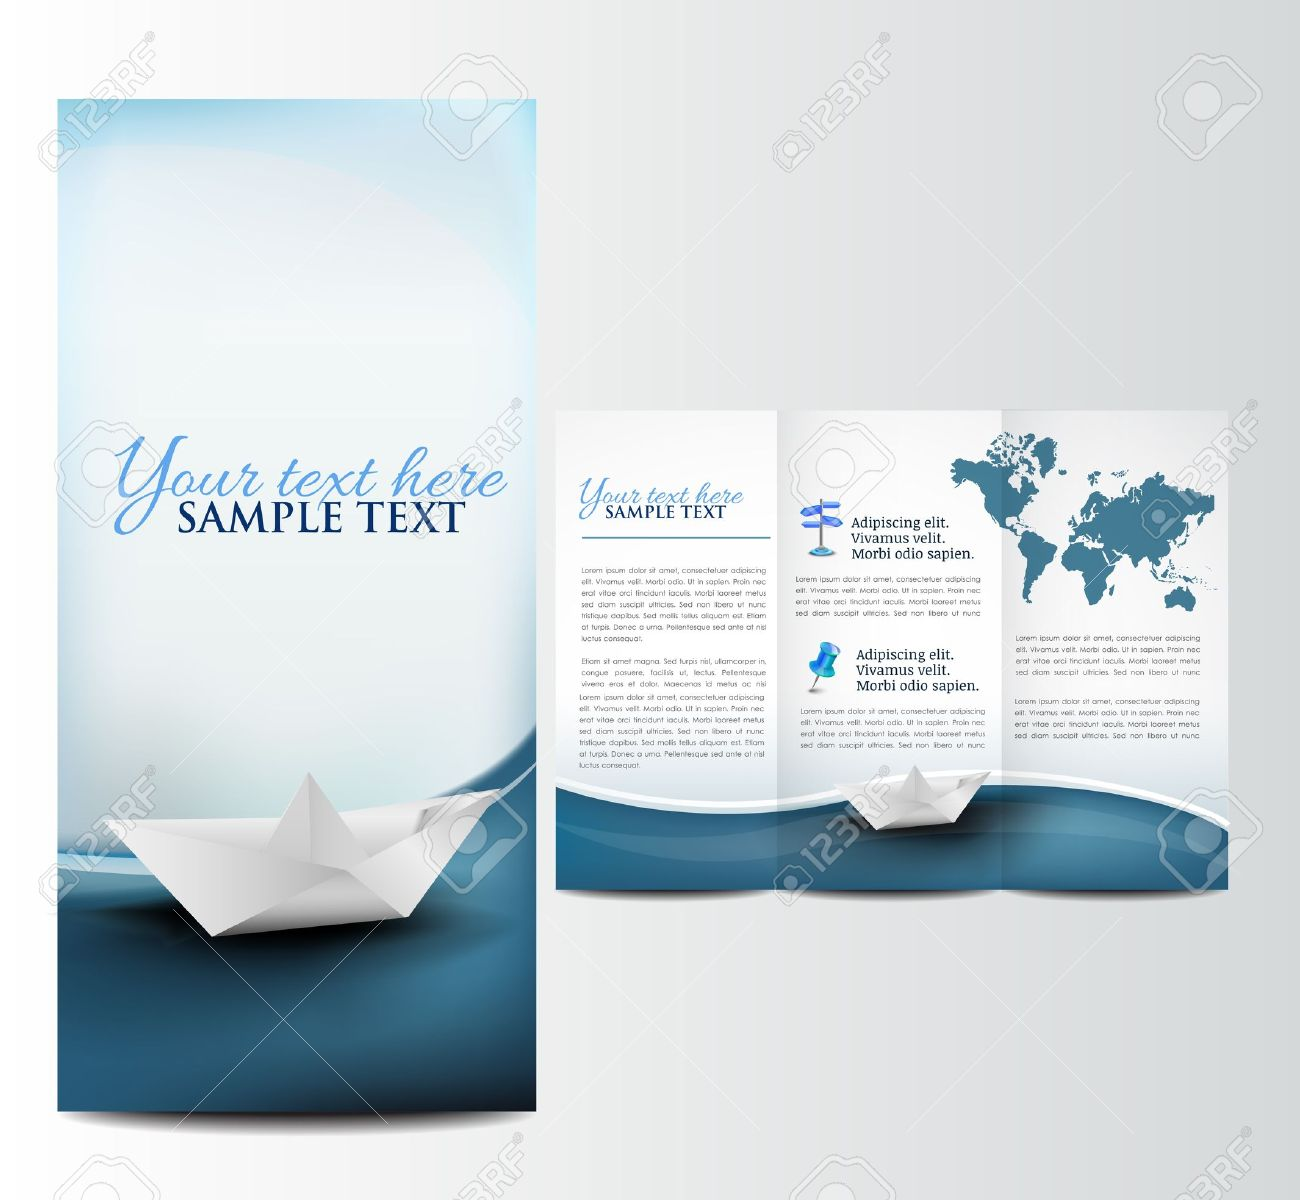 Brochure With Paper Boat Template Stock Vector